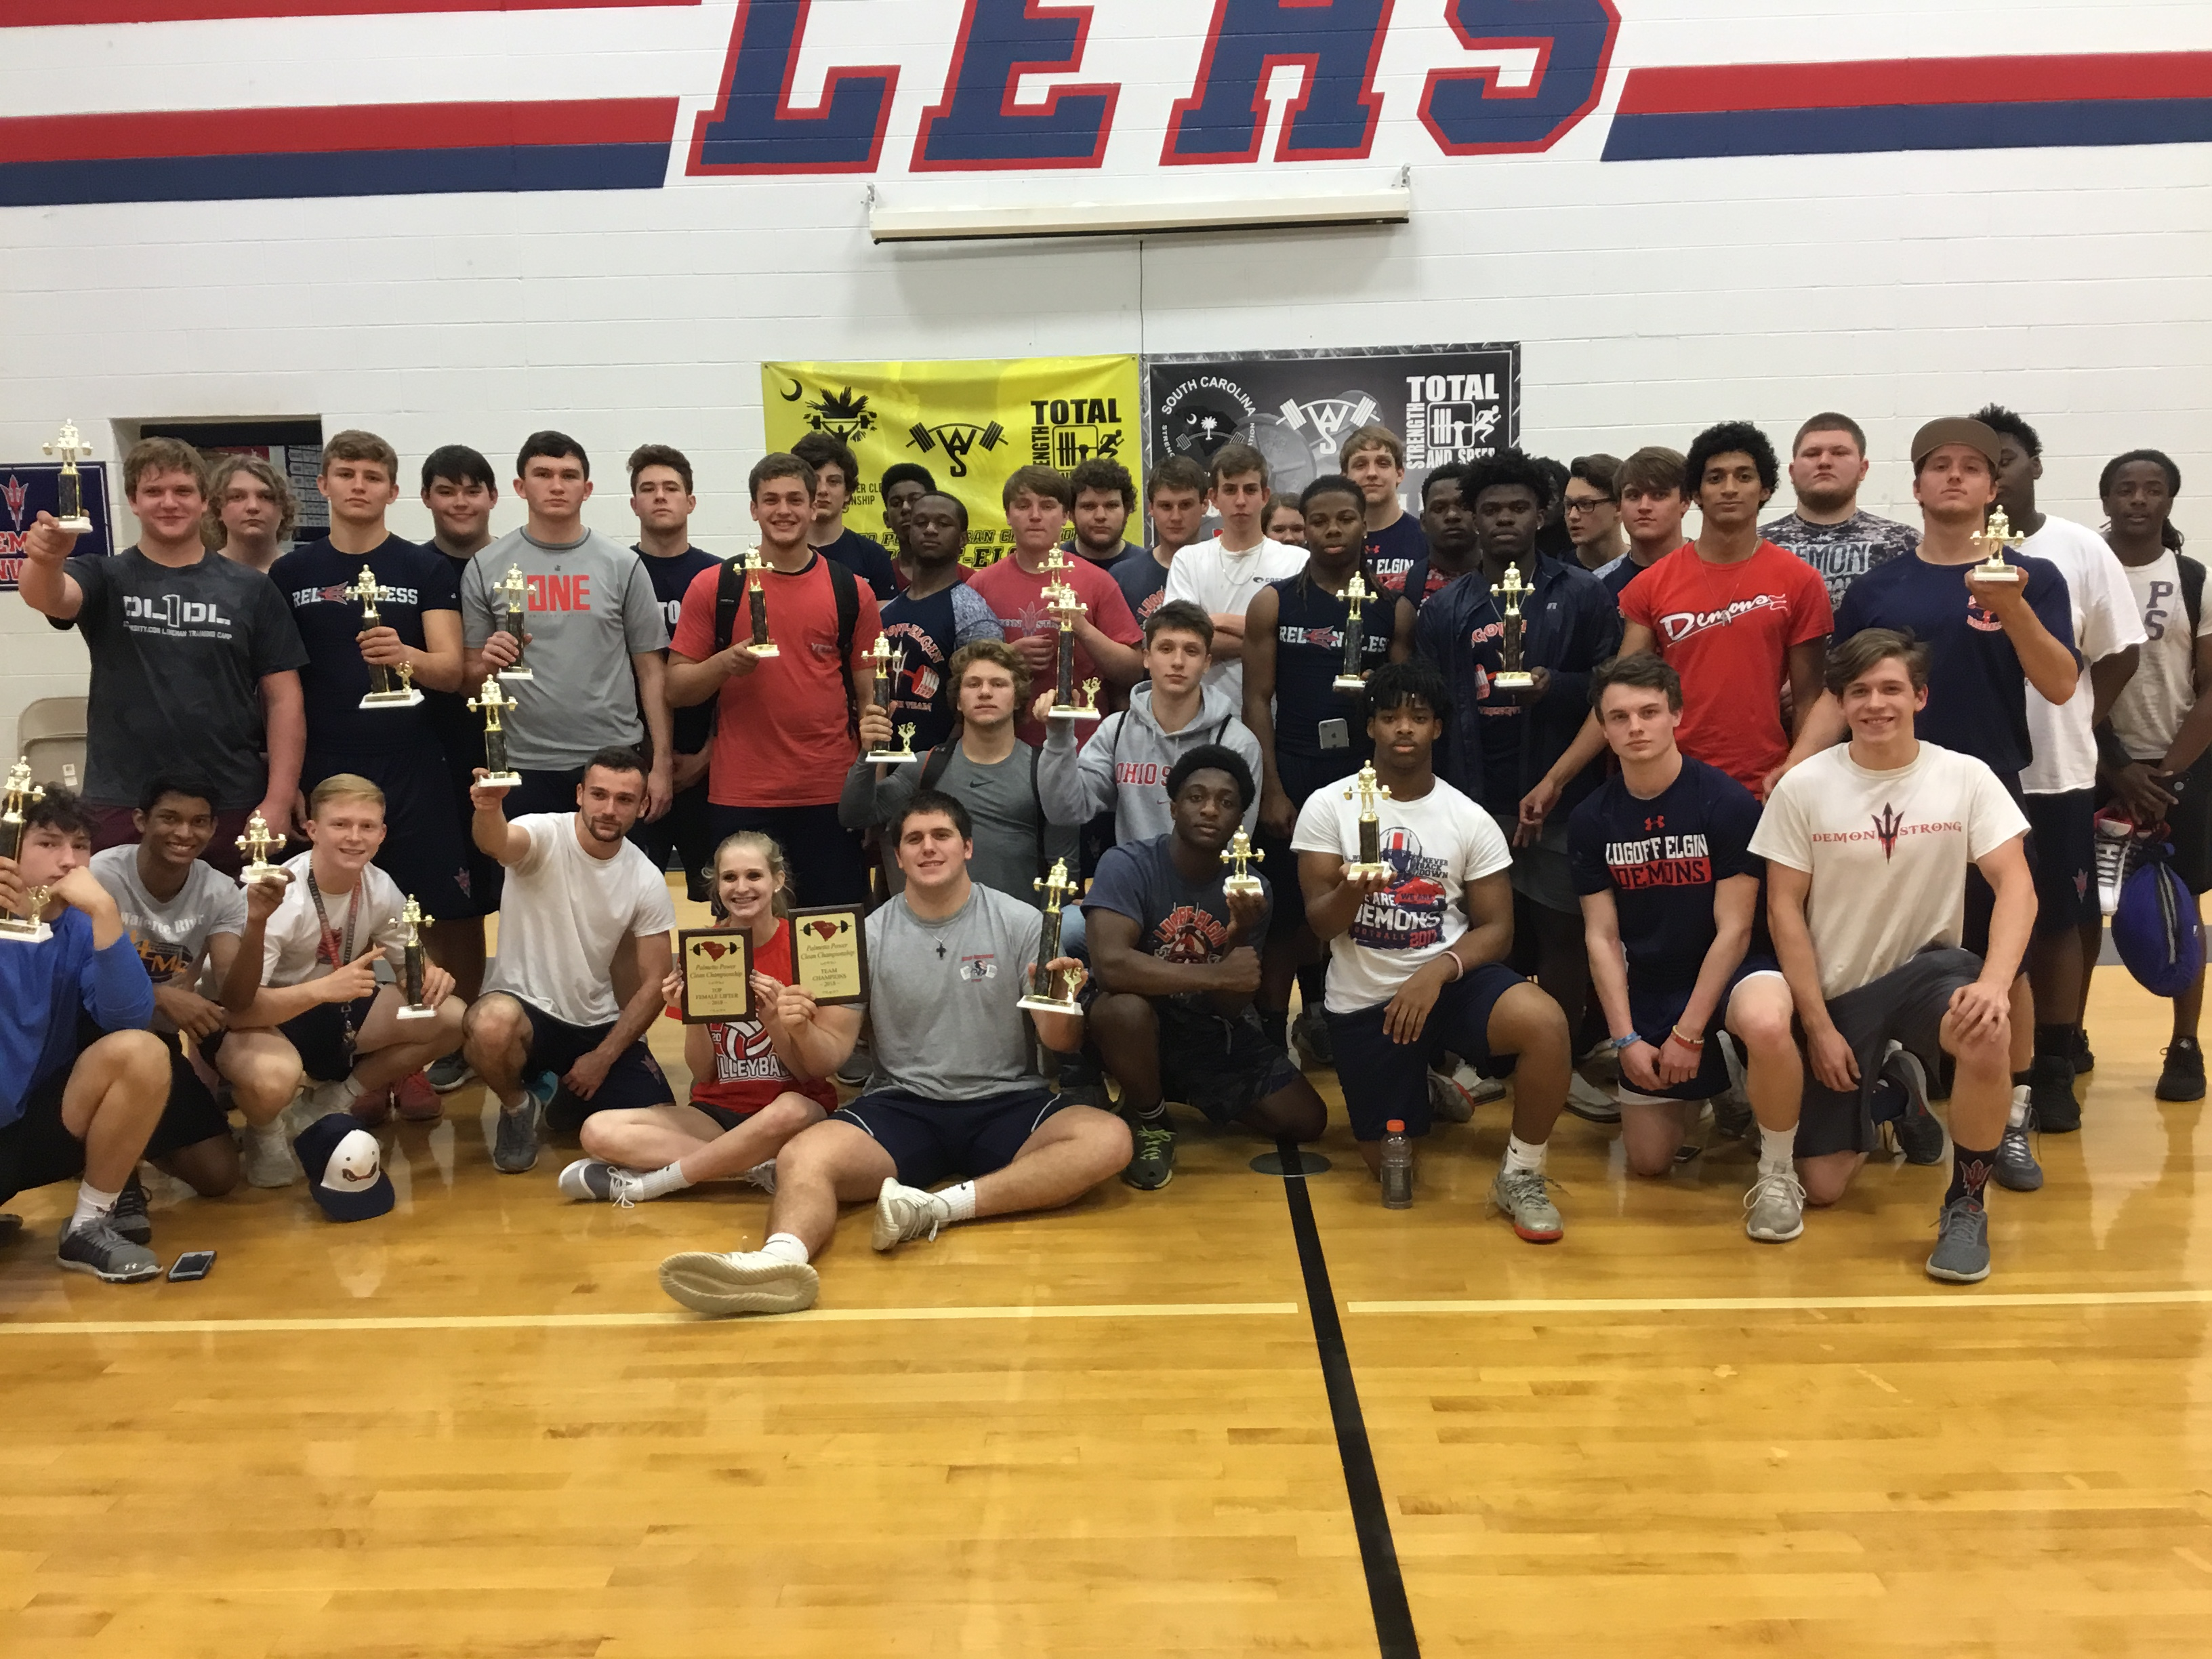 Lugoff-Elgin wins Palmetto Power Clean for the 3rd Straight Year.